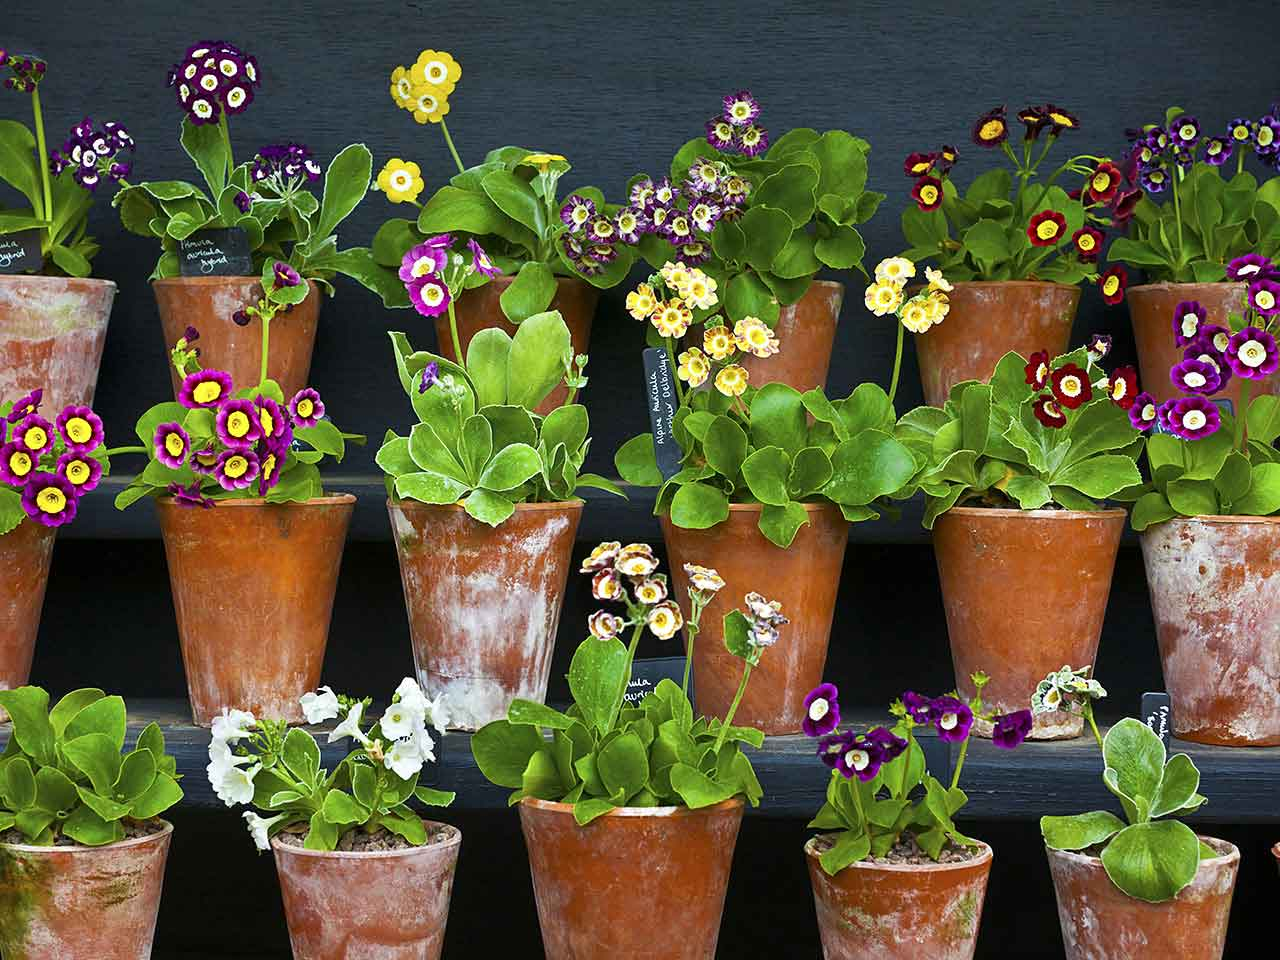 Auriculas in flower pots